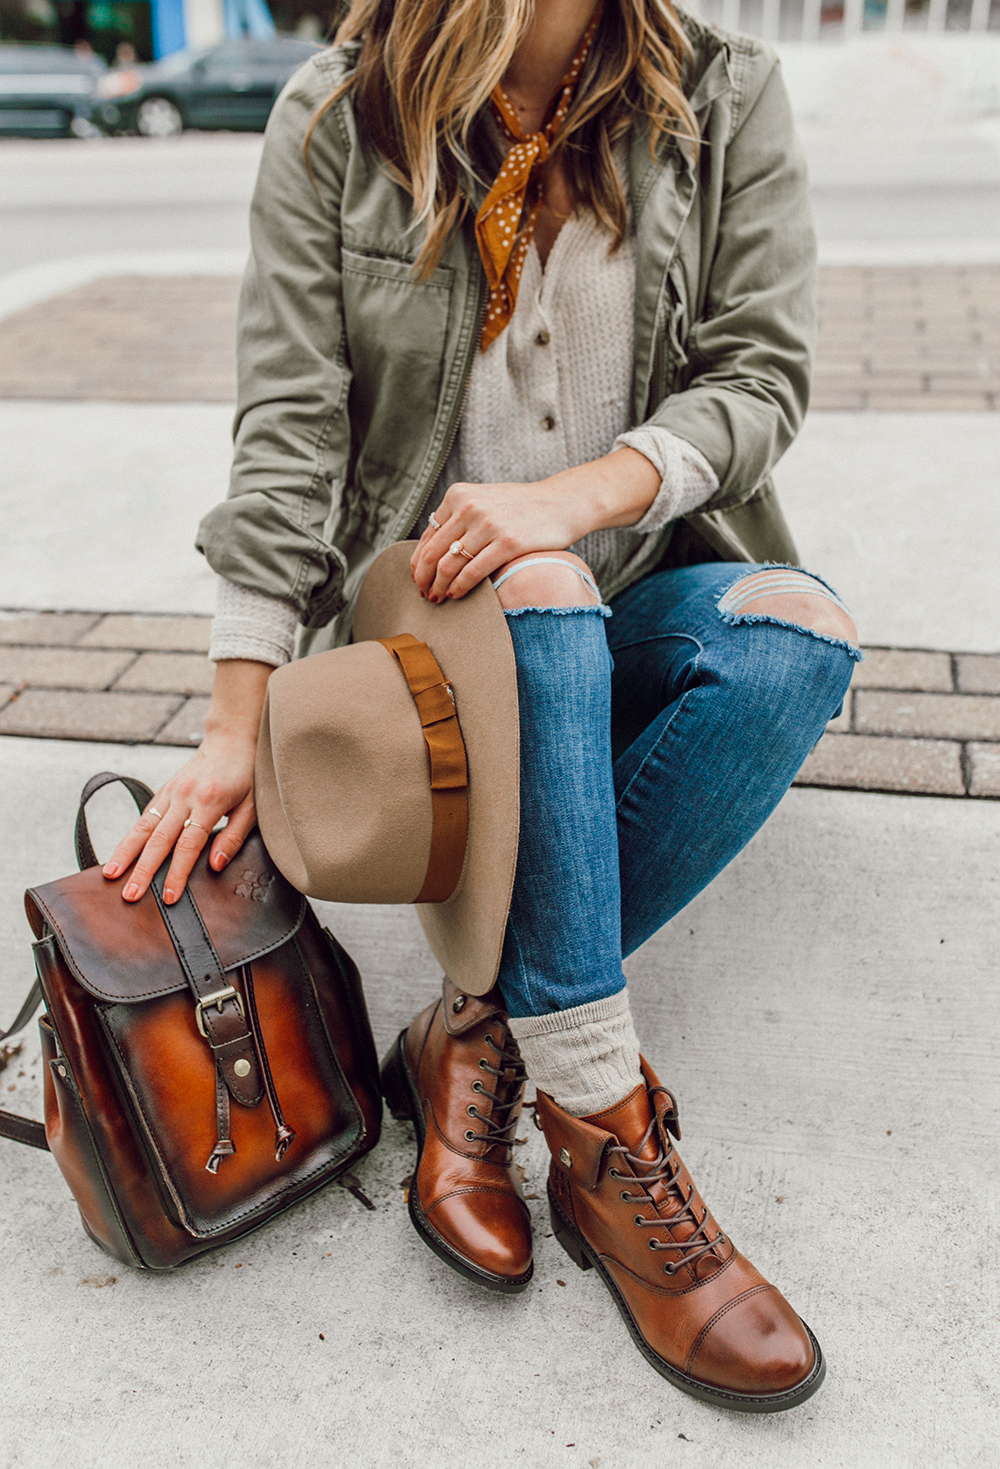 livvyland-blog-olivia-watson-austin-texas-fashion-style-blog-combat-boots-fall-outfit-inspiration-patricia-nash-11